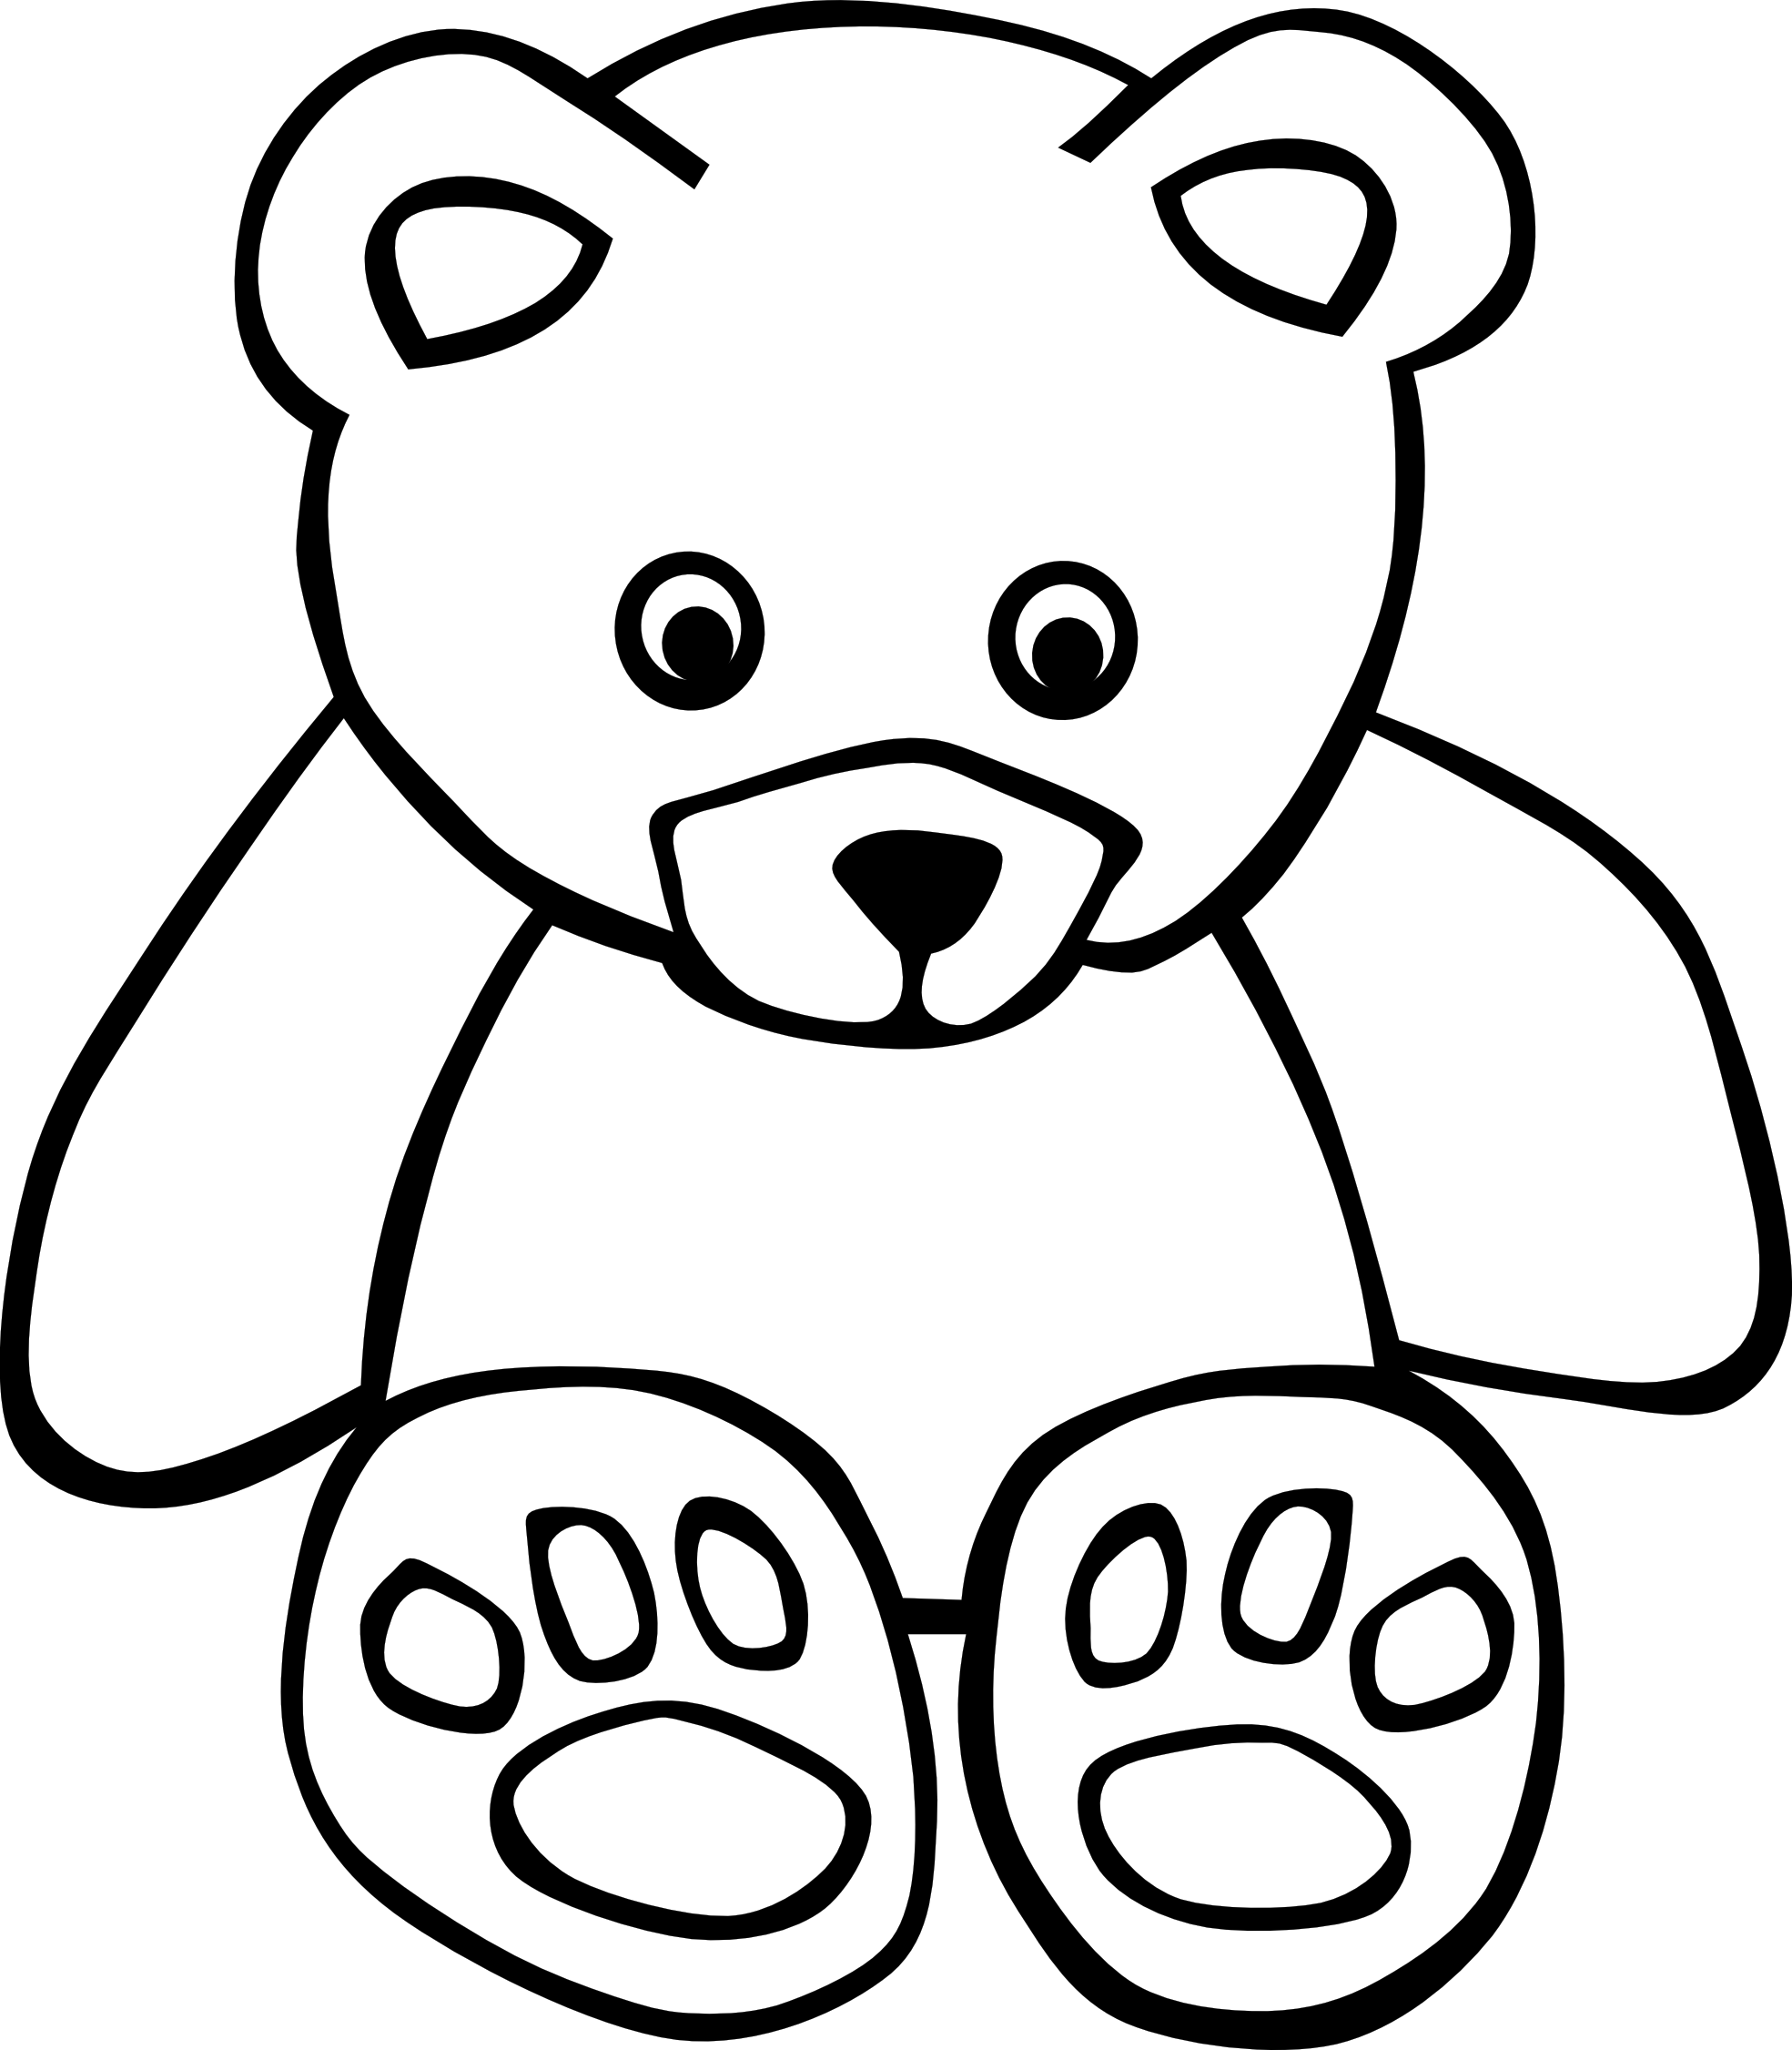 1271715 83 bear black white line art teddy bear clipart best rh pinterest com cute teddy bear clipart black and white